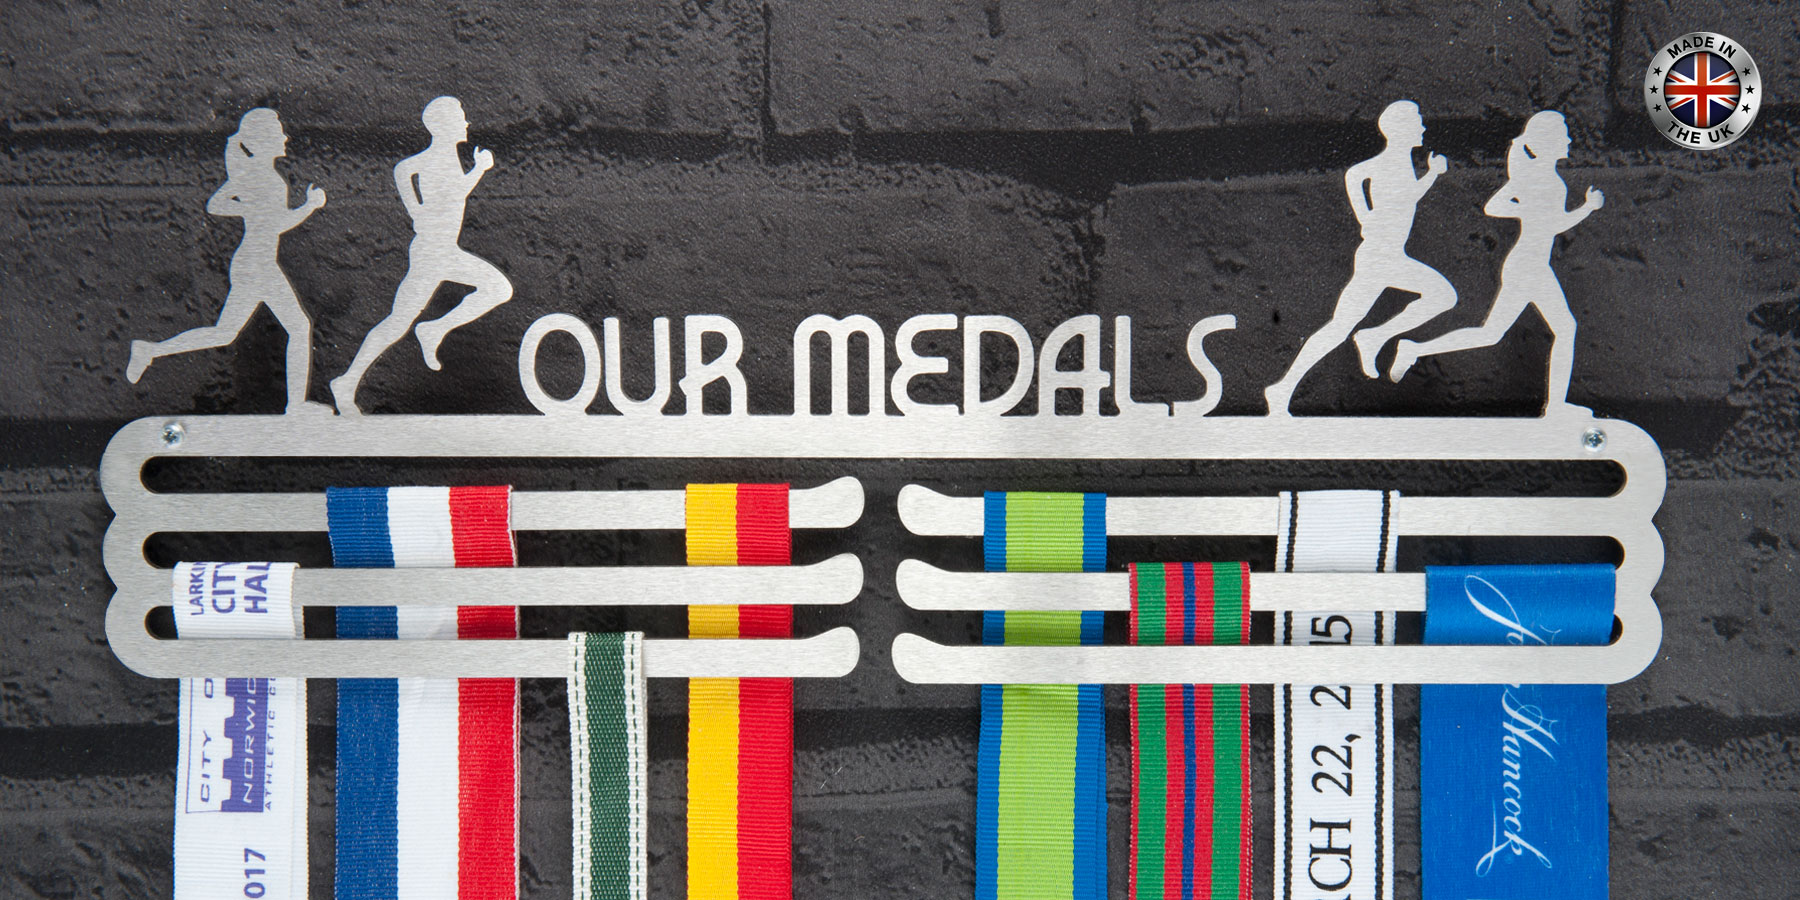 Medal hangers and medal displays from The Runners Wall